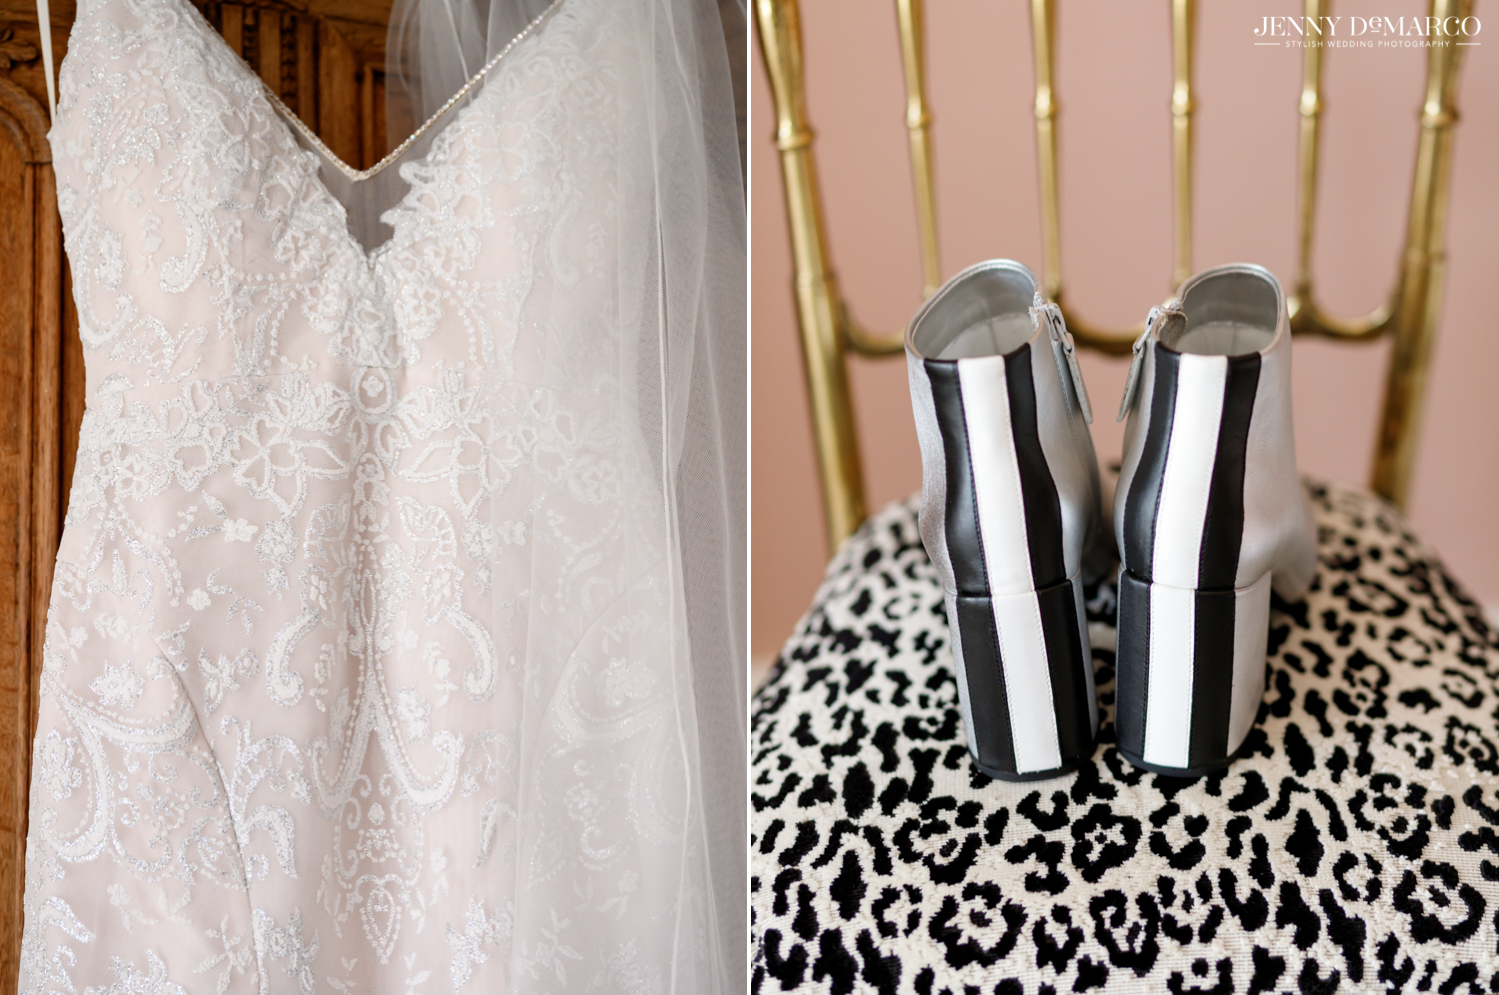 Lace wedding dress and black, white and silver bridal booties